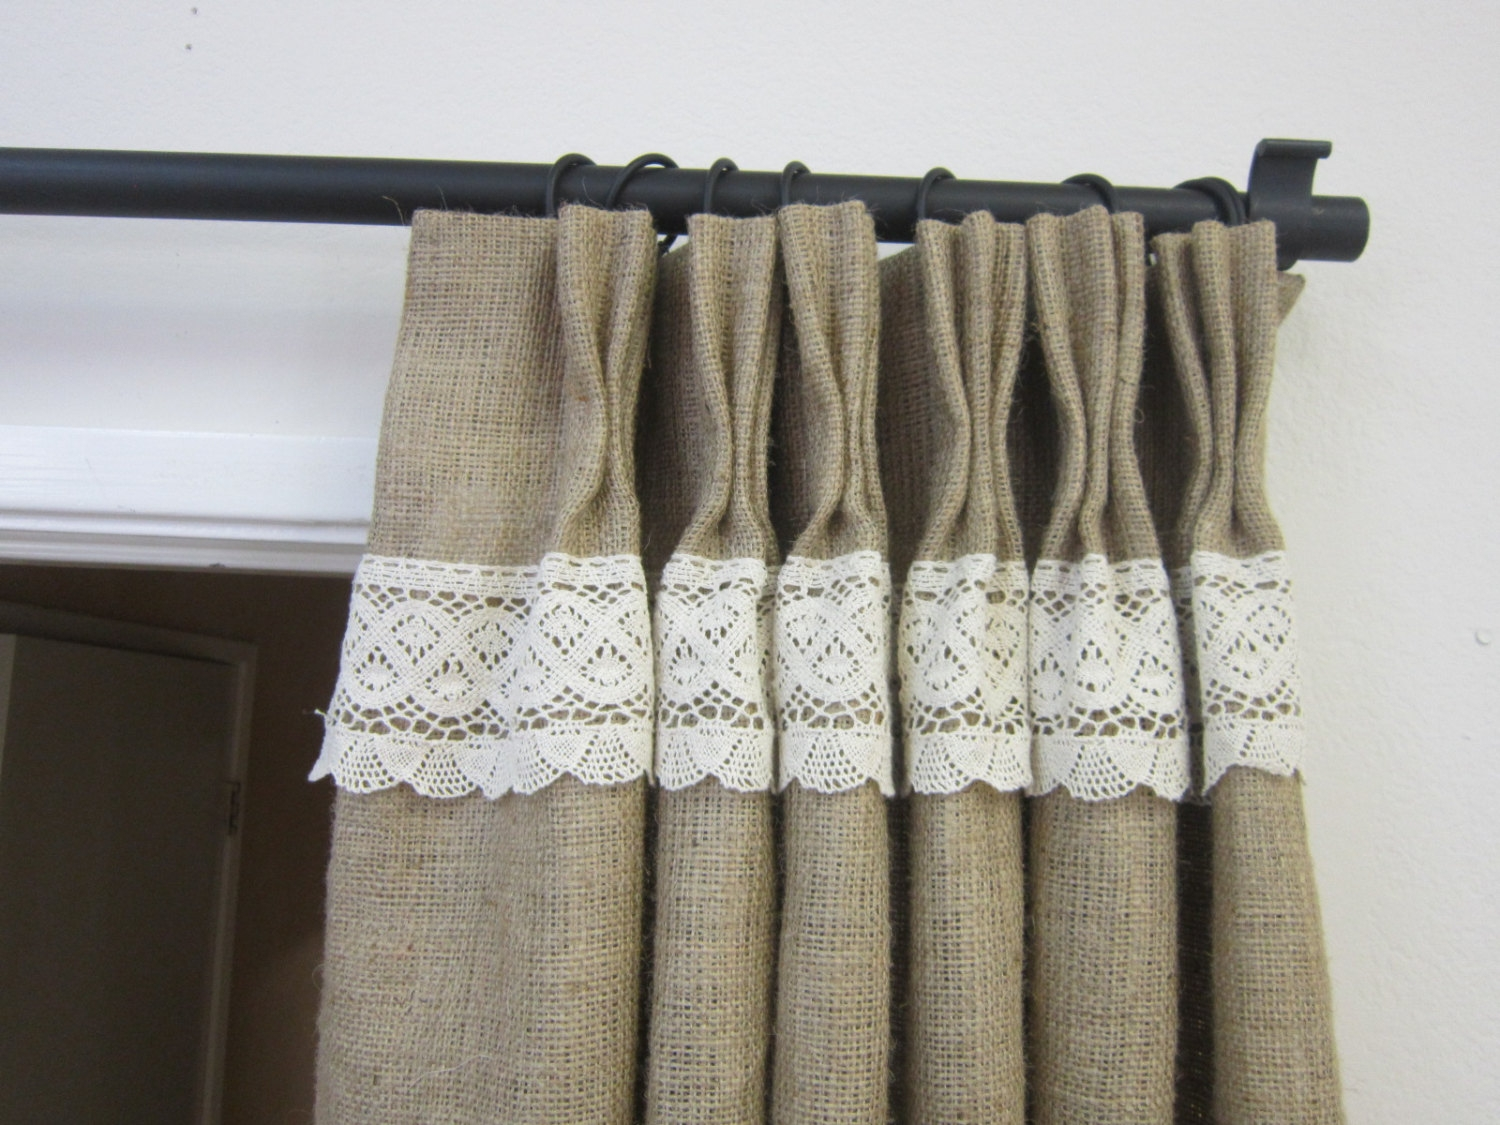 84 Burlap Lace Curtains Burlap Curtains Burlap Pinch Intended For Burlap Curtains (Image 2 of 25)